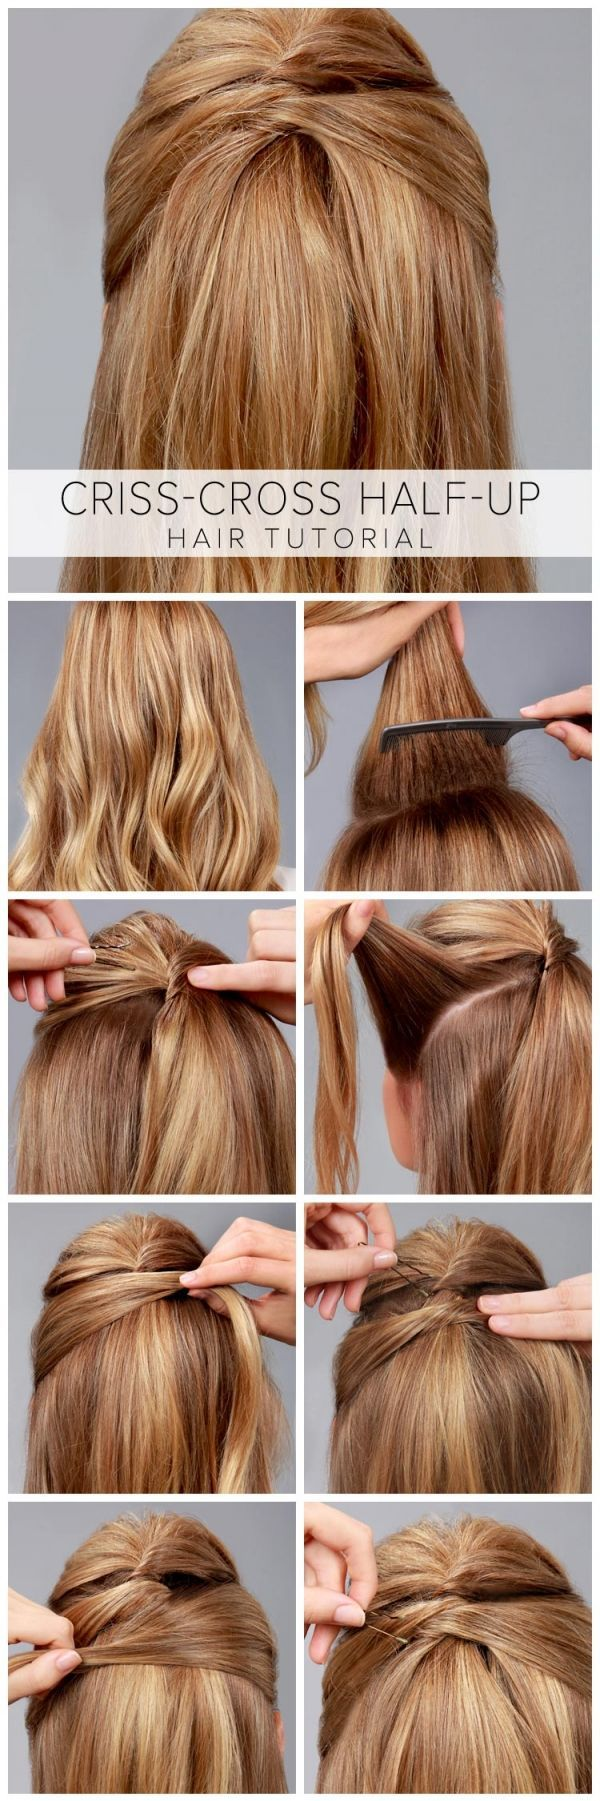 22 Half Up Half Down Hairstyles (Easy Step by Step Hair Tutorials